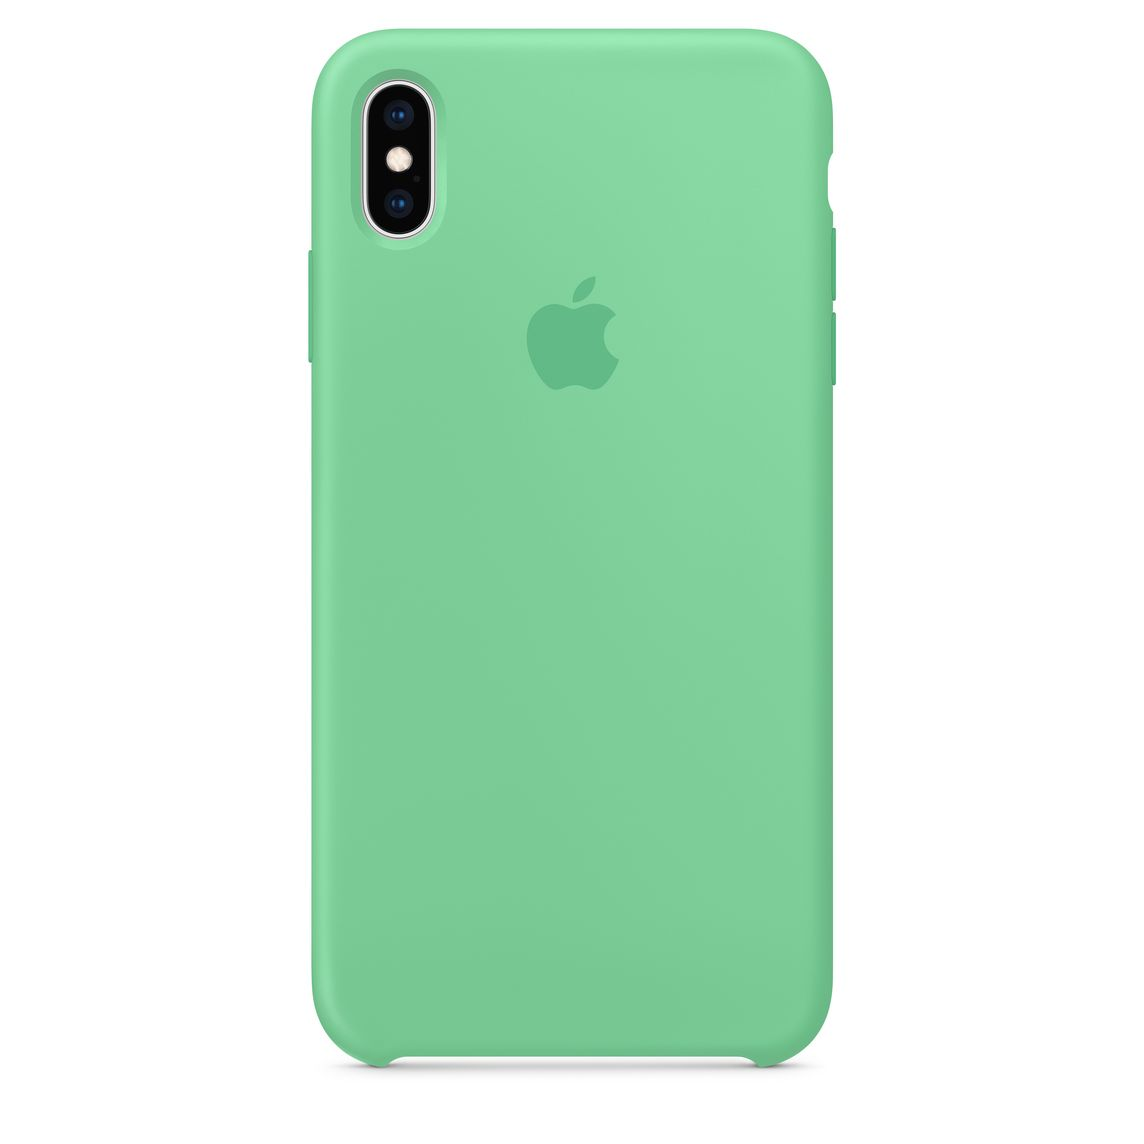 official photos d893e 8e6f5 iPhone XS Max Silicone Case - Spearmint